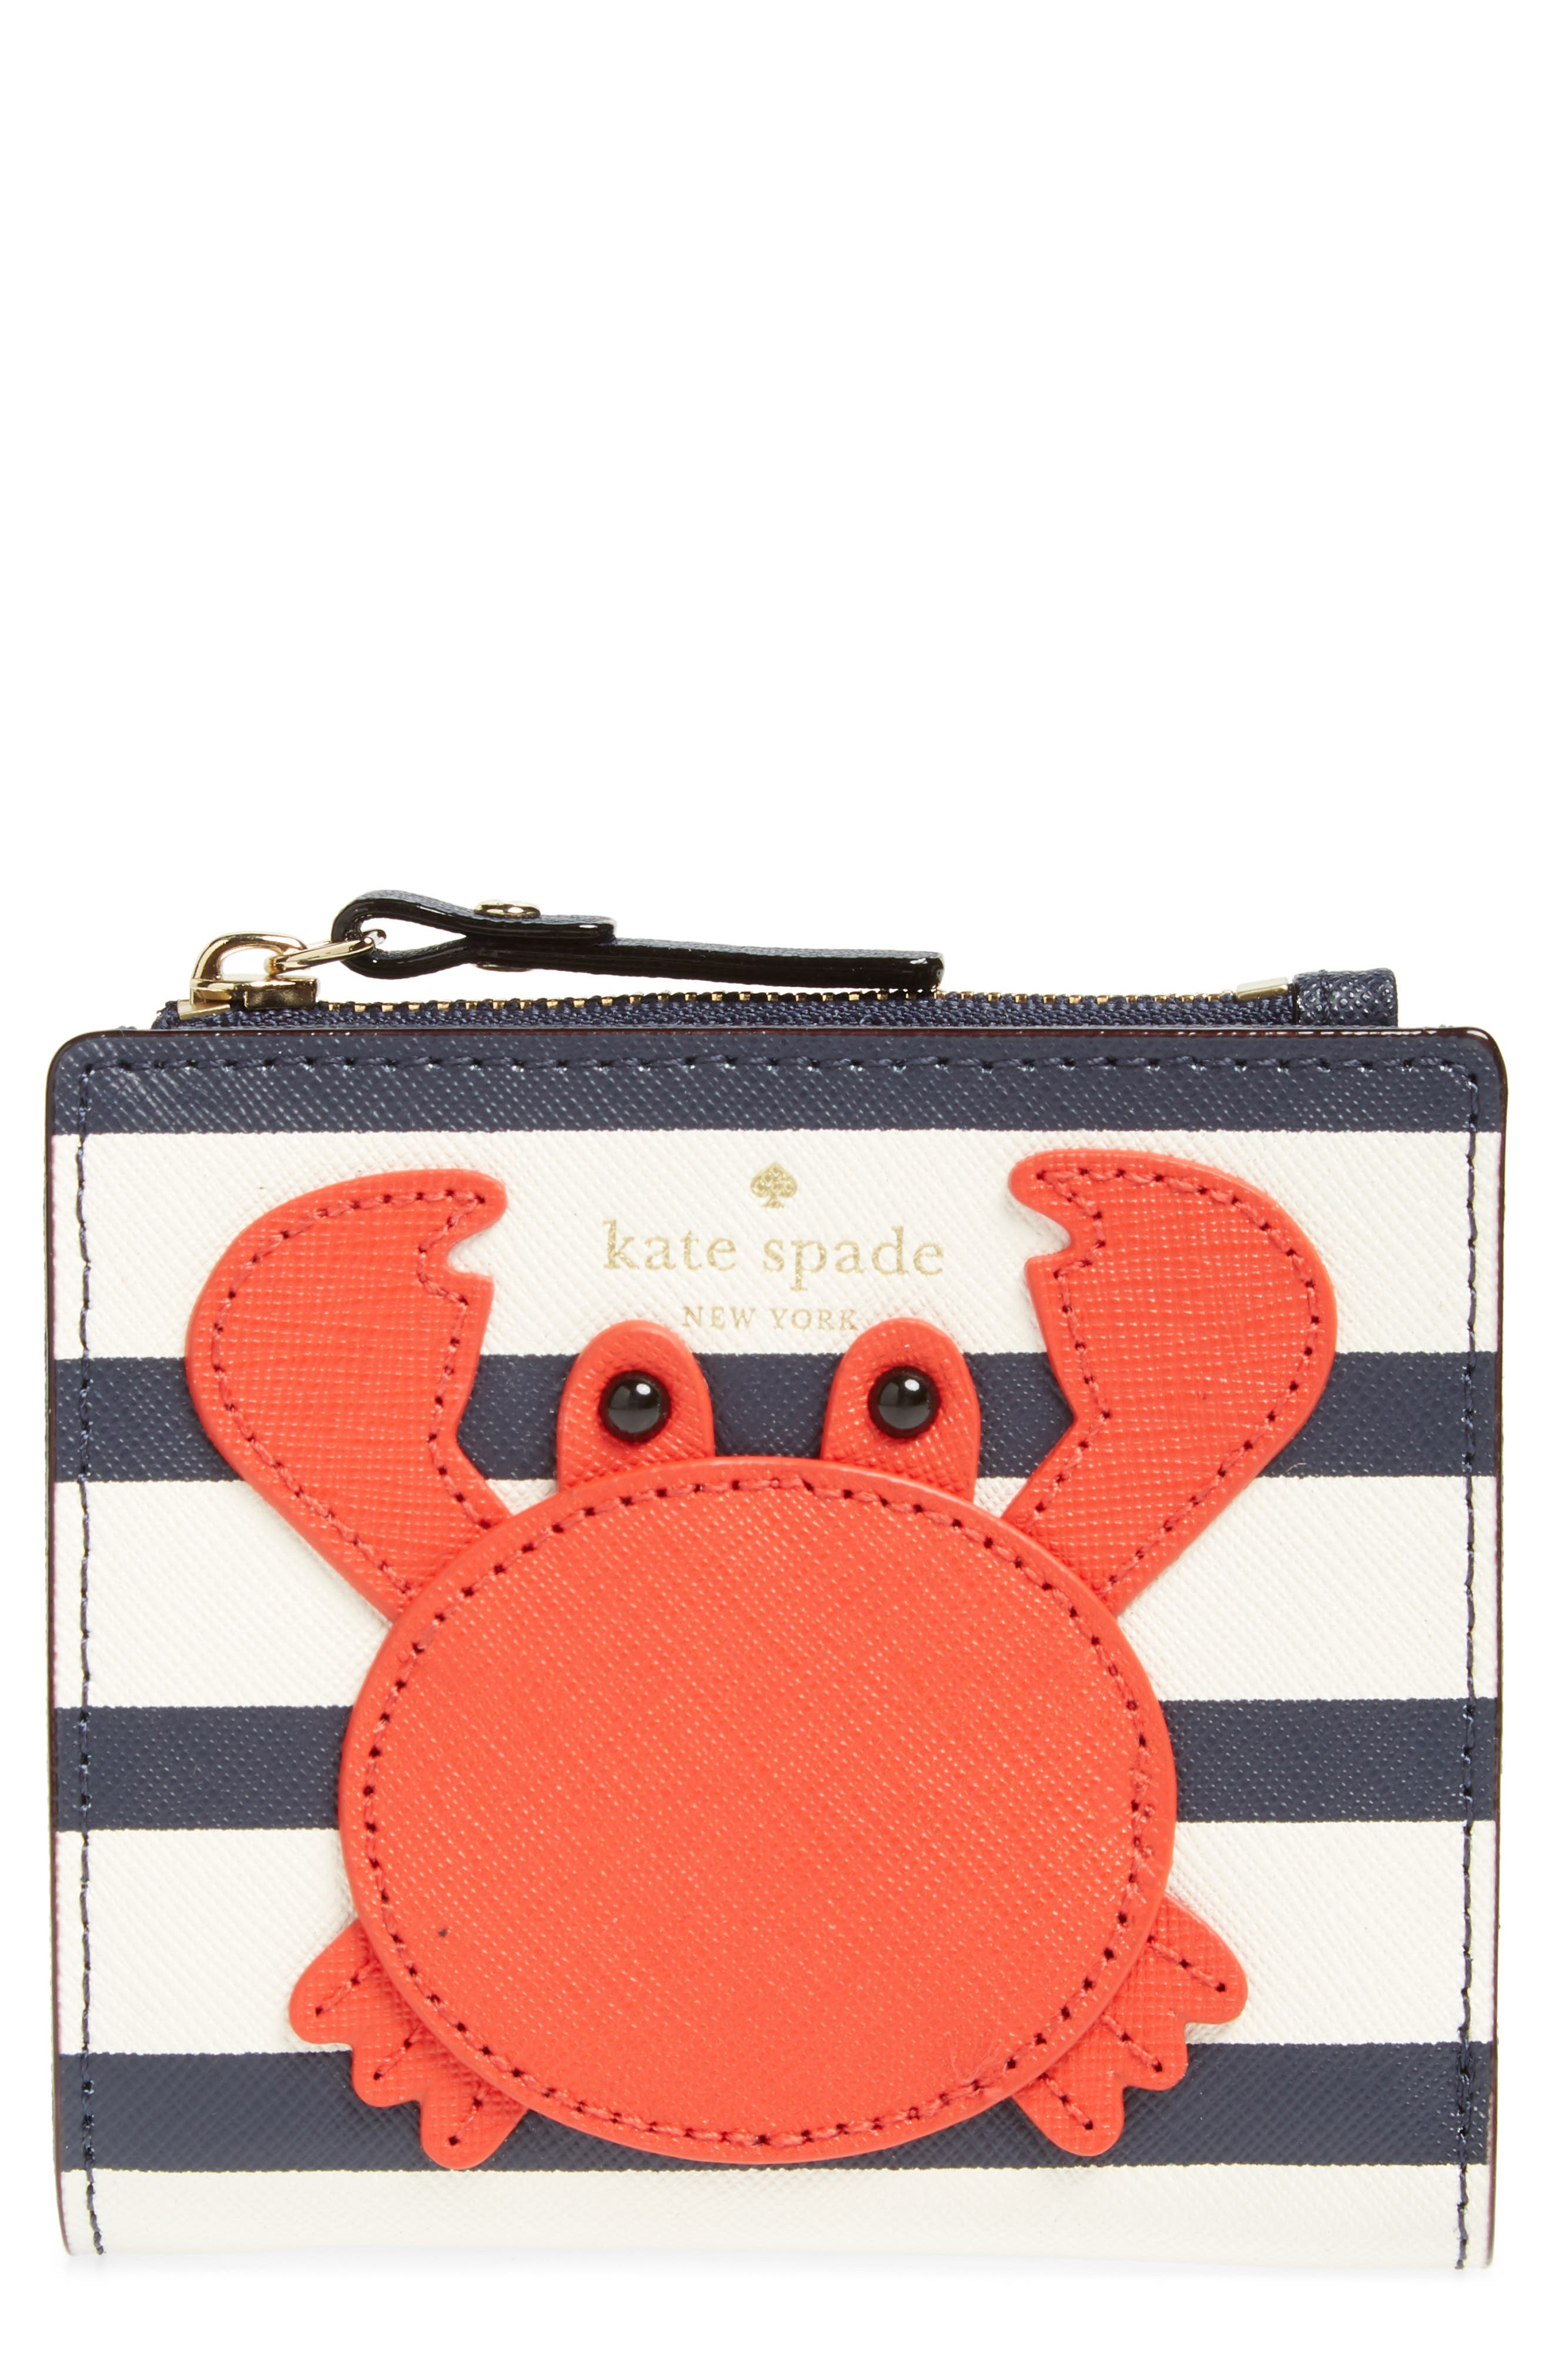 shore thing - stripe adalyn leather wallet,                             Main thumbnail 1, color,                             600